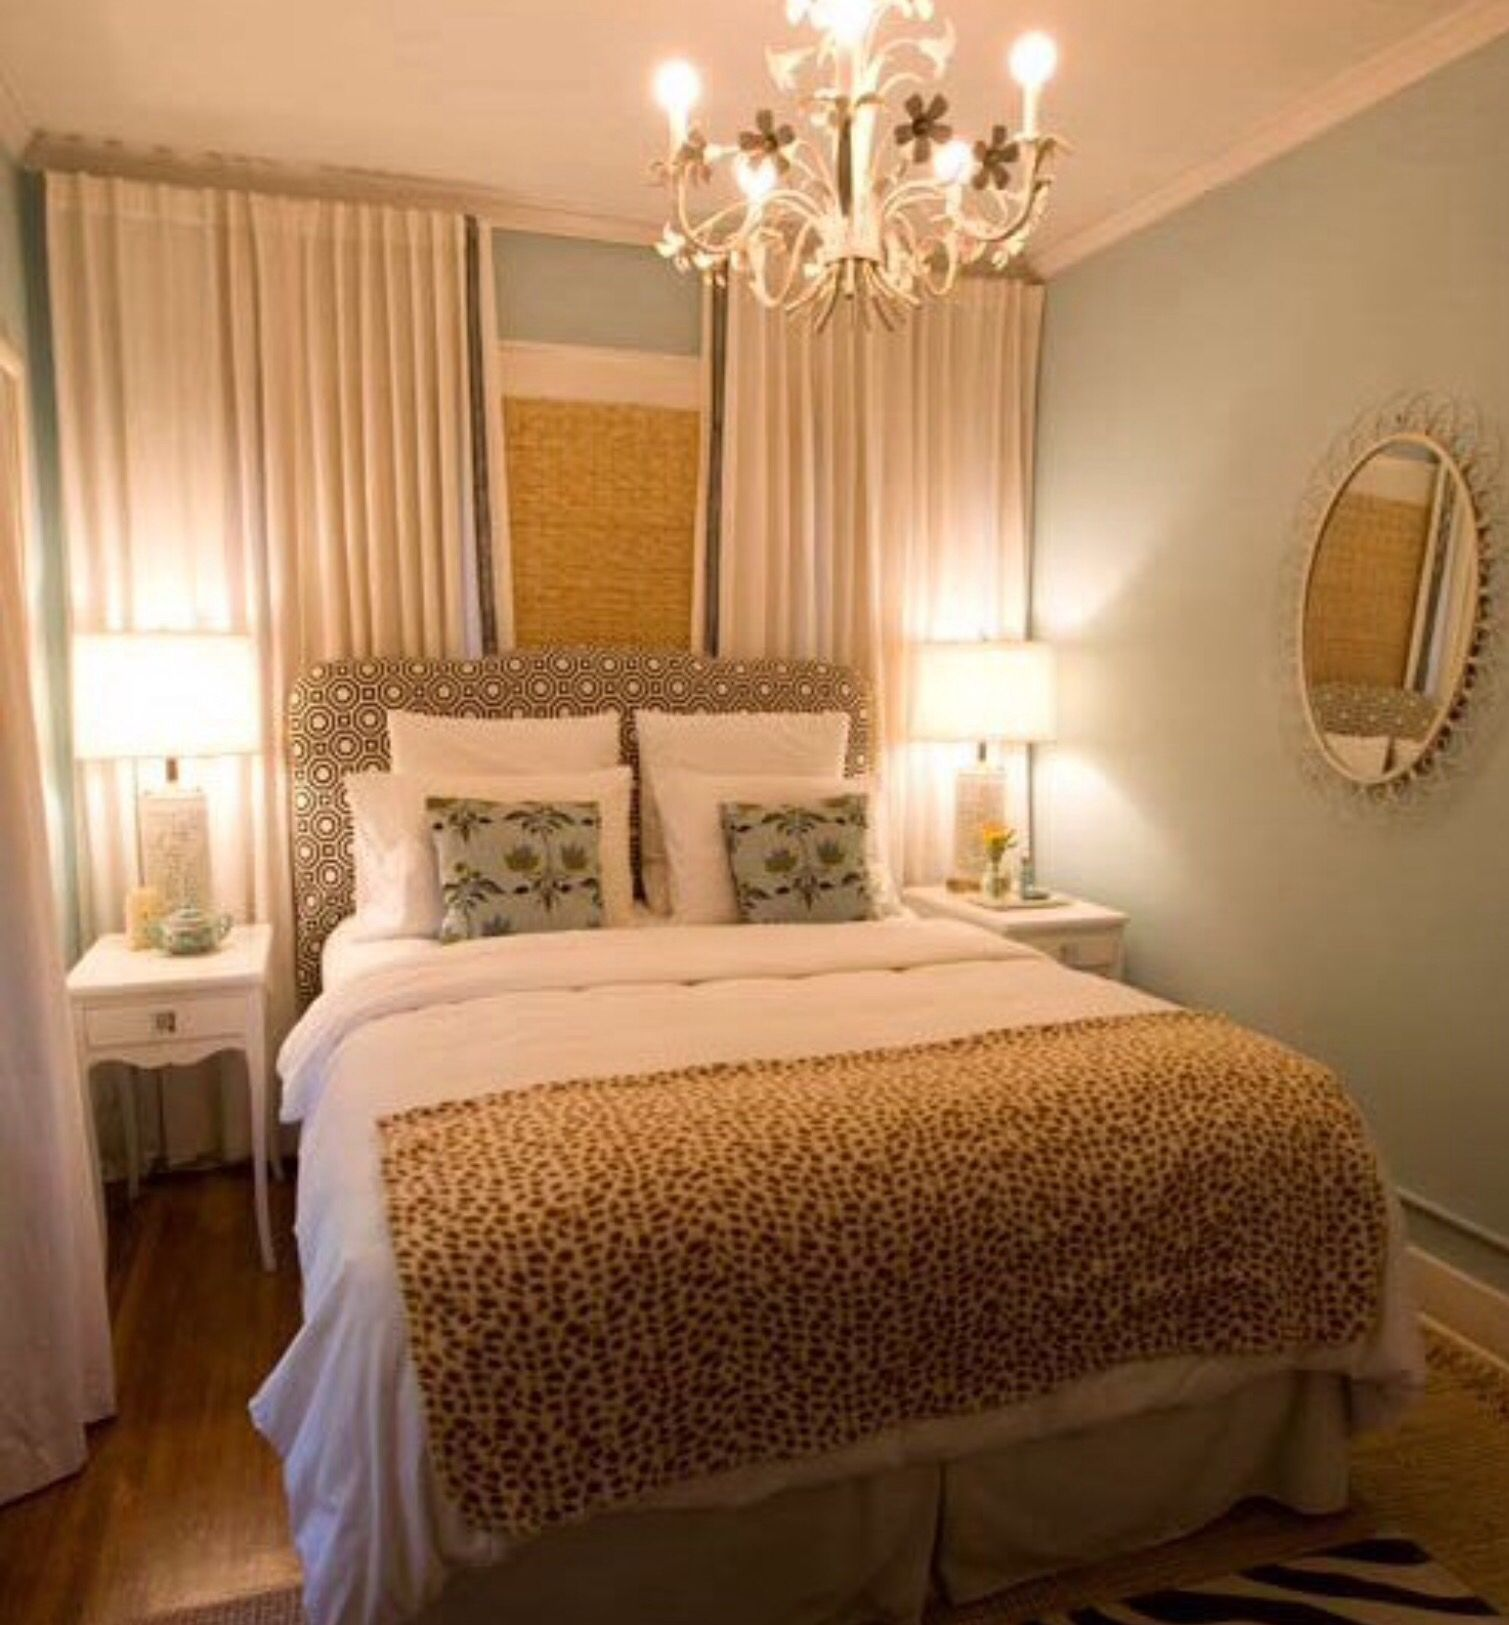 Cute Tiny Guest Room Very Small Bedroom Small Master Bedroom Master Bedrooms Decor